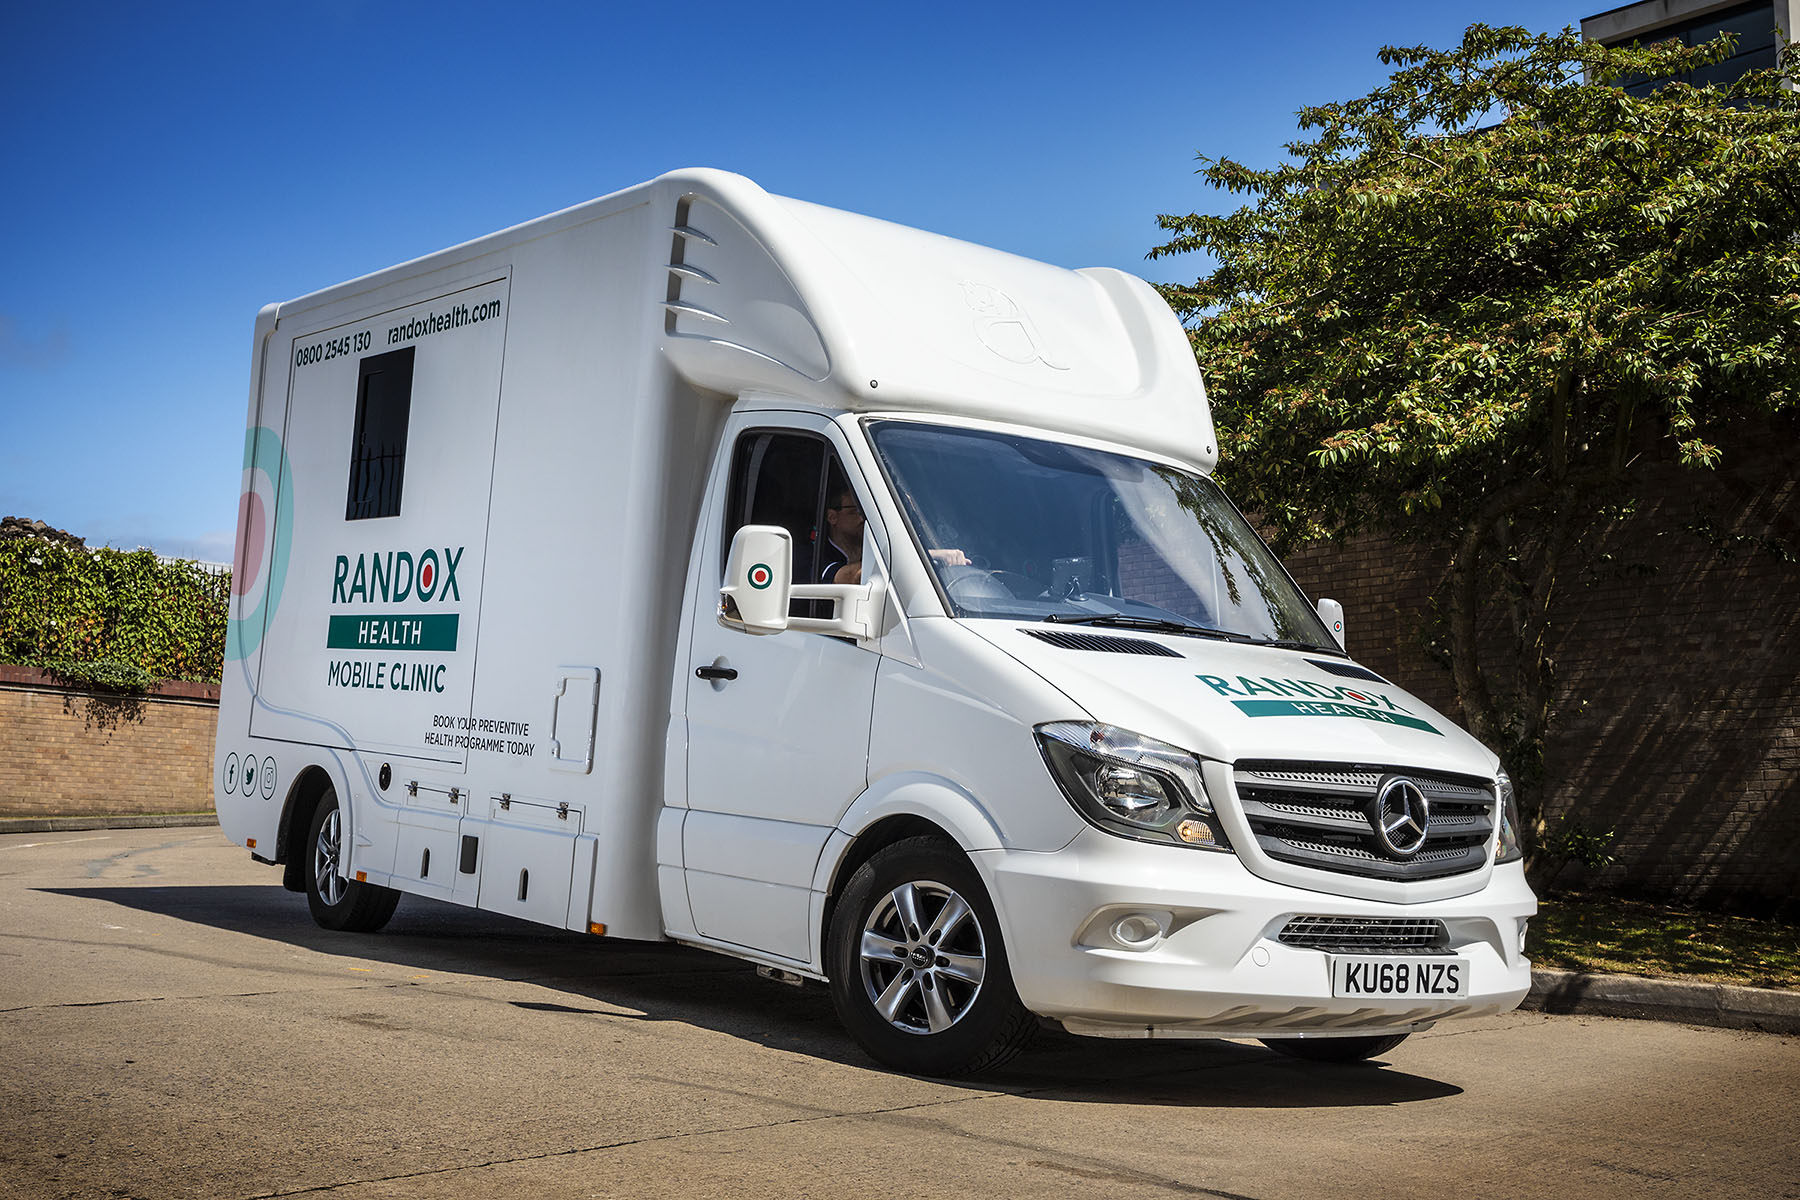 Healthcare leader takes its life-extending diagnostic service on the road with eye-catching Mercedes-Benz Sprinters